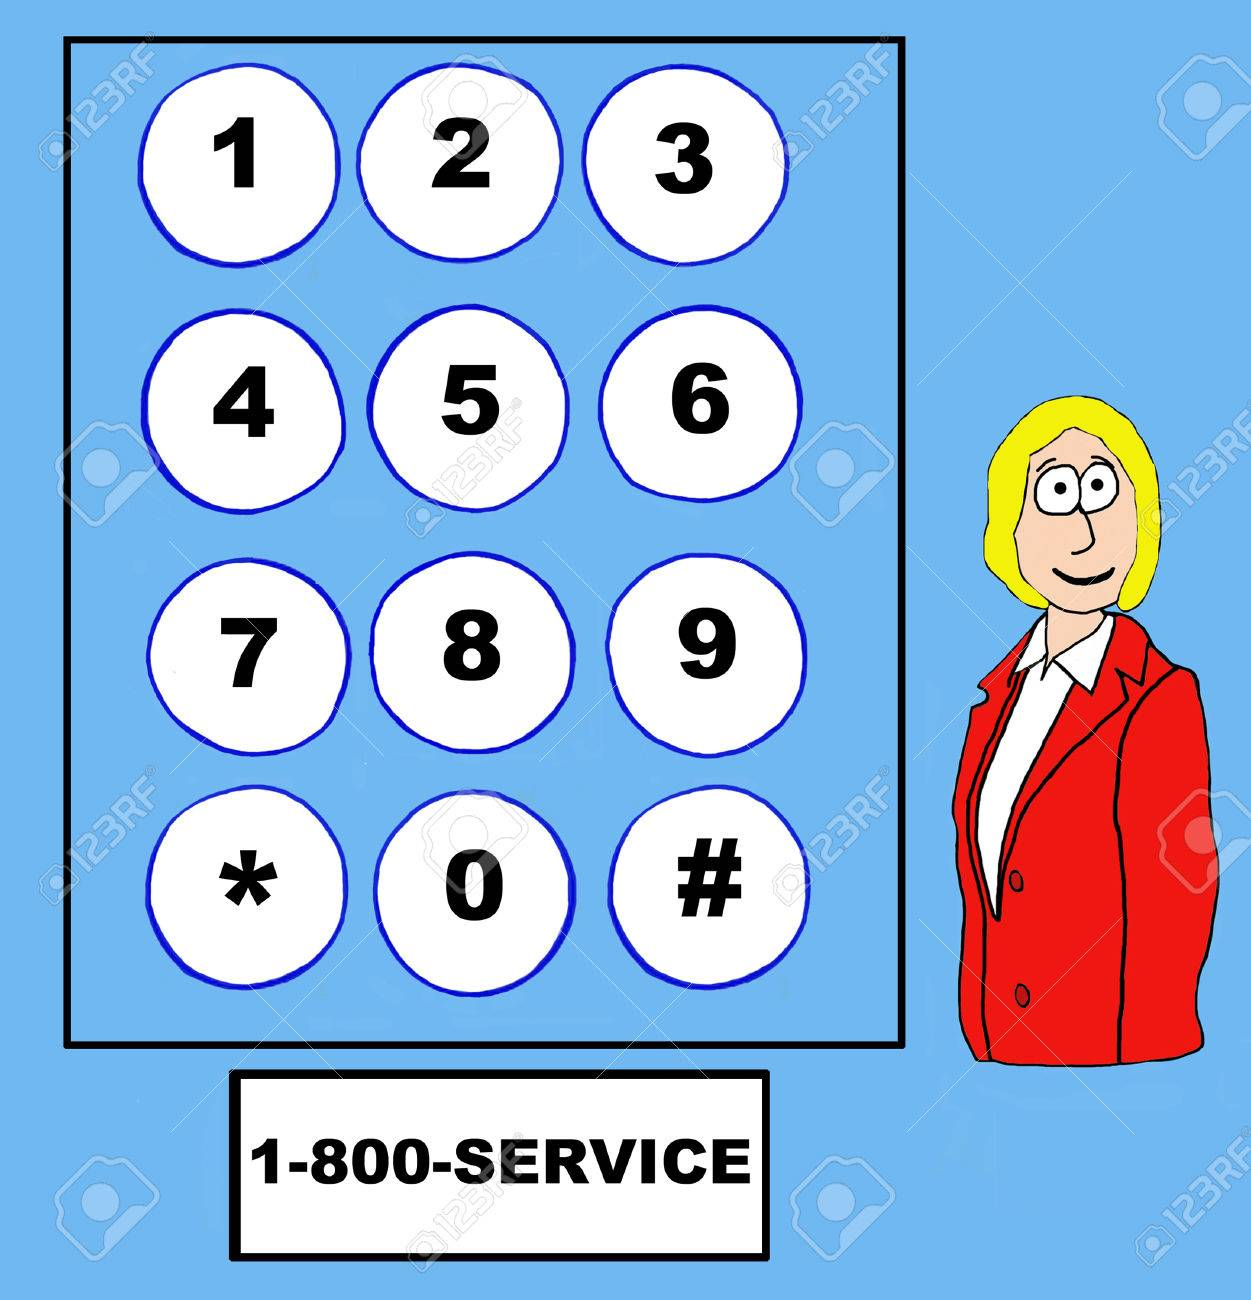 Business Cartoon Of Businesswoman, Telephone Touch Pad And 1-800 ...